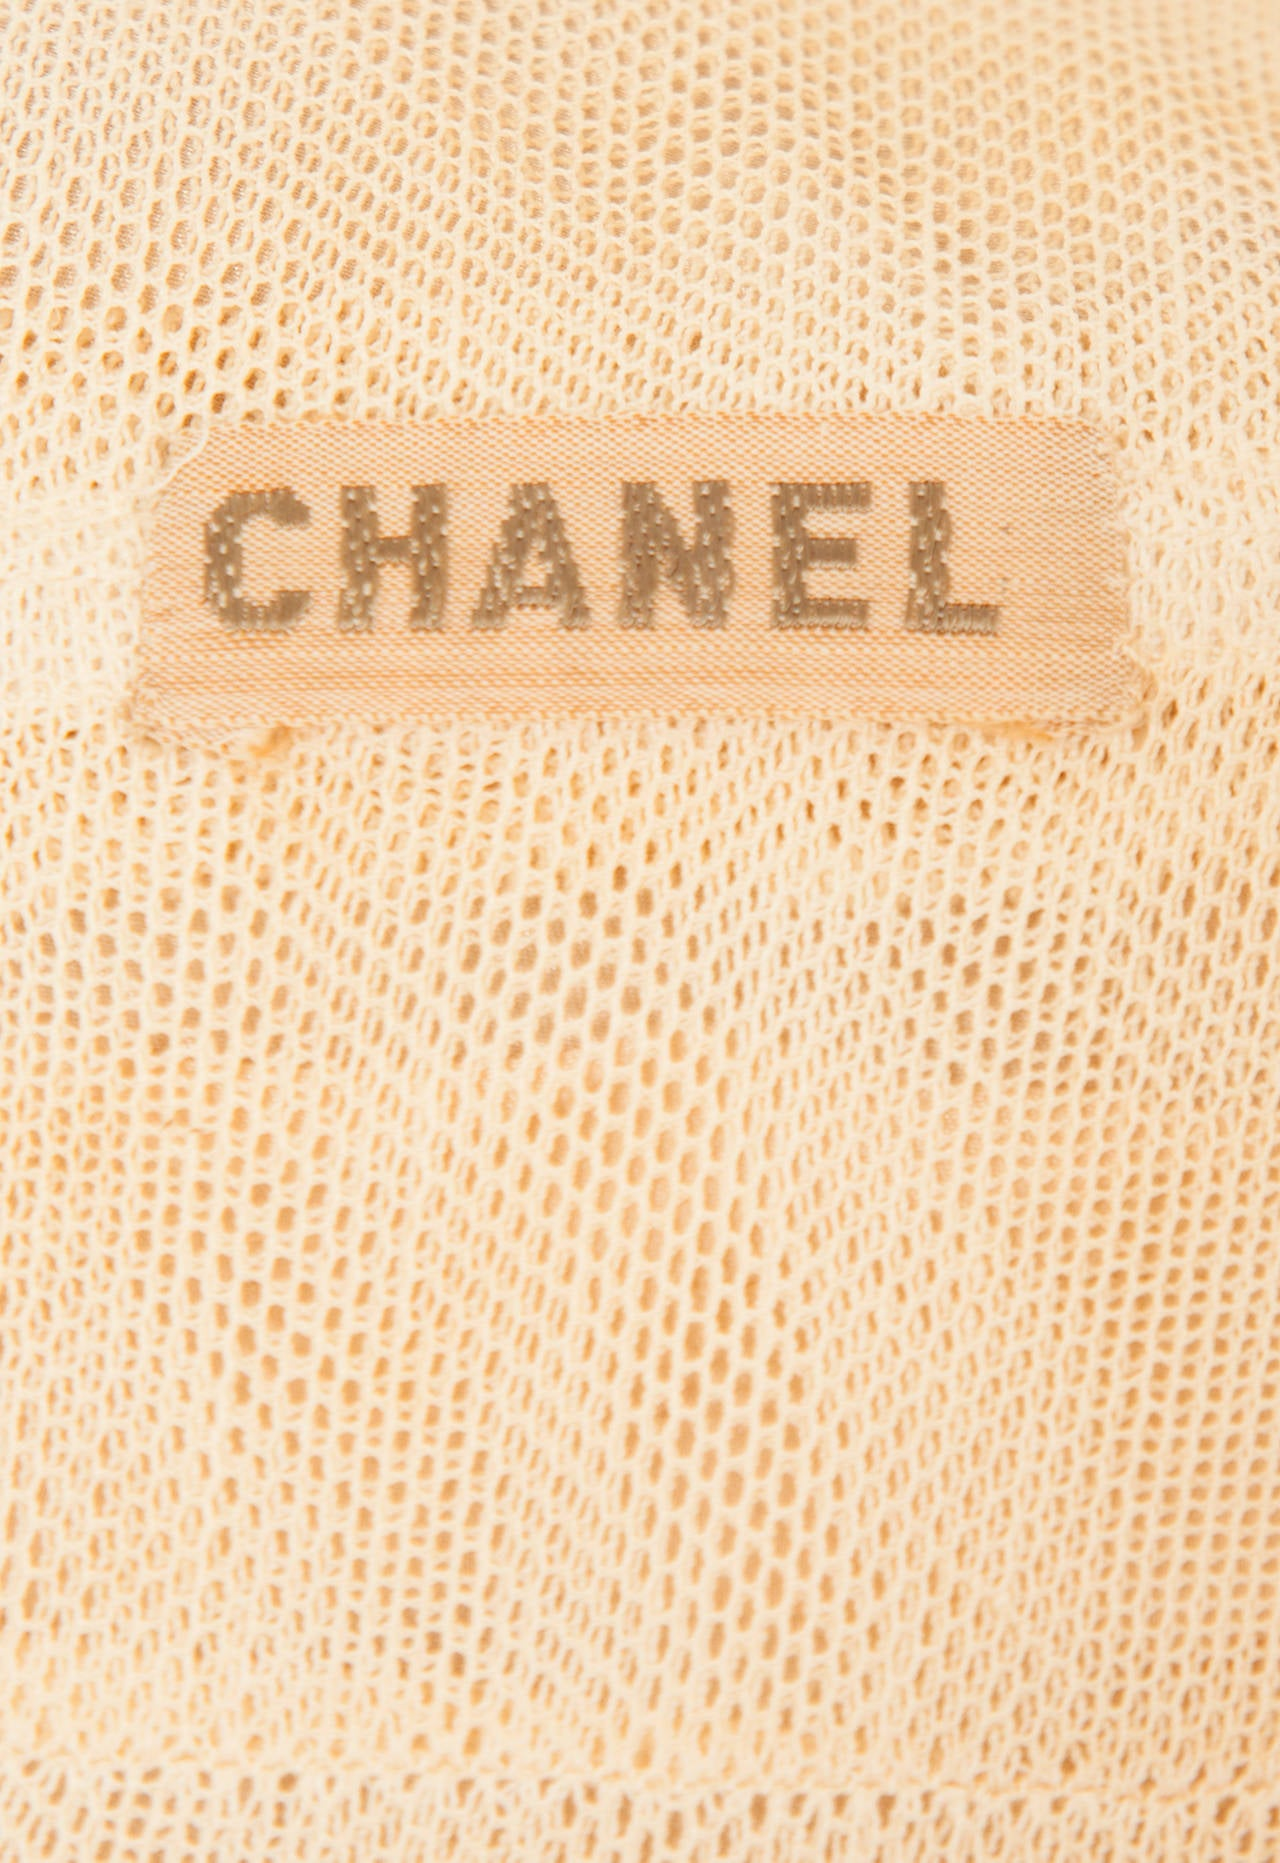 Chanel haute couture ivory lace dress circa 1955 for sale for Haute couture labels